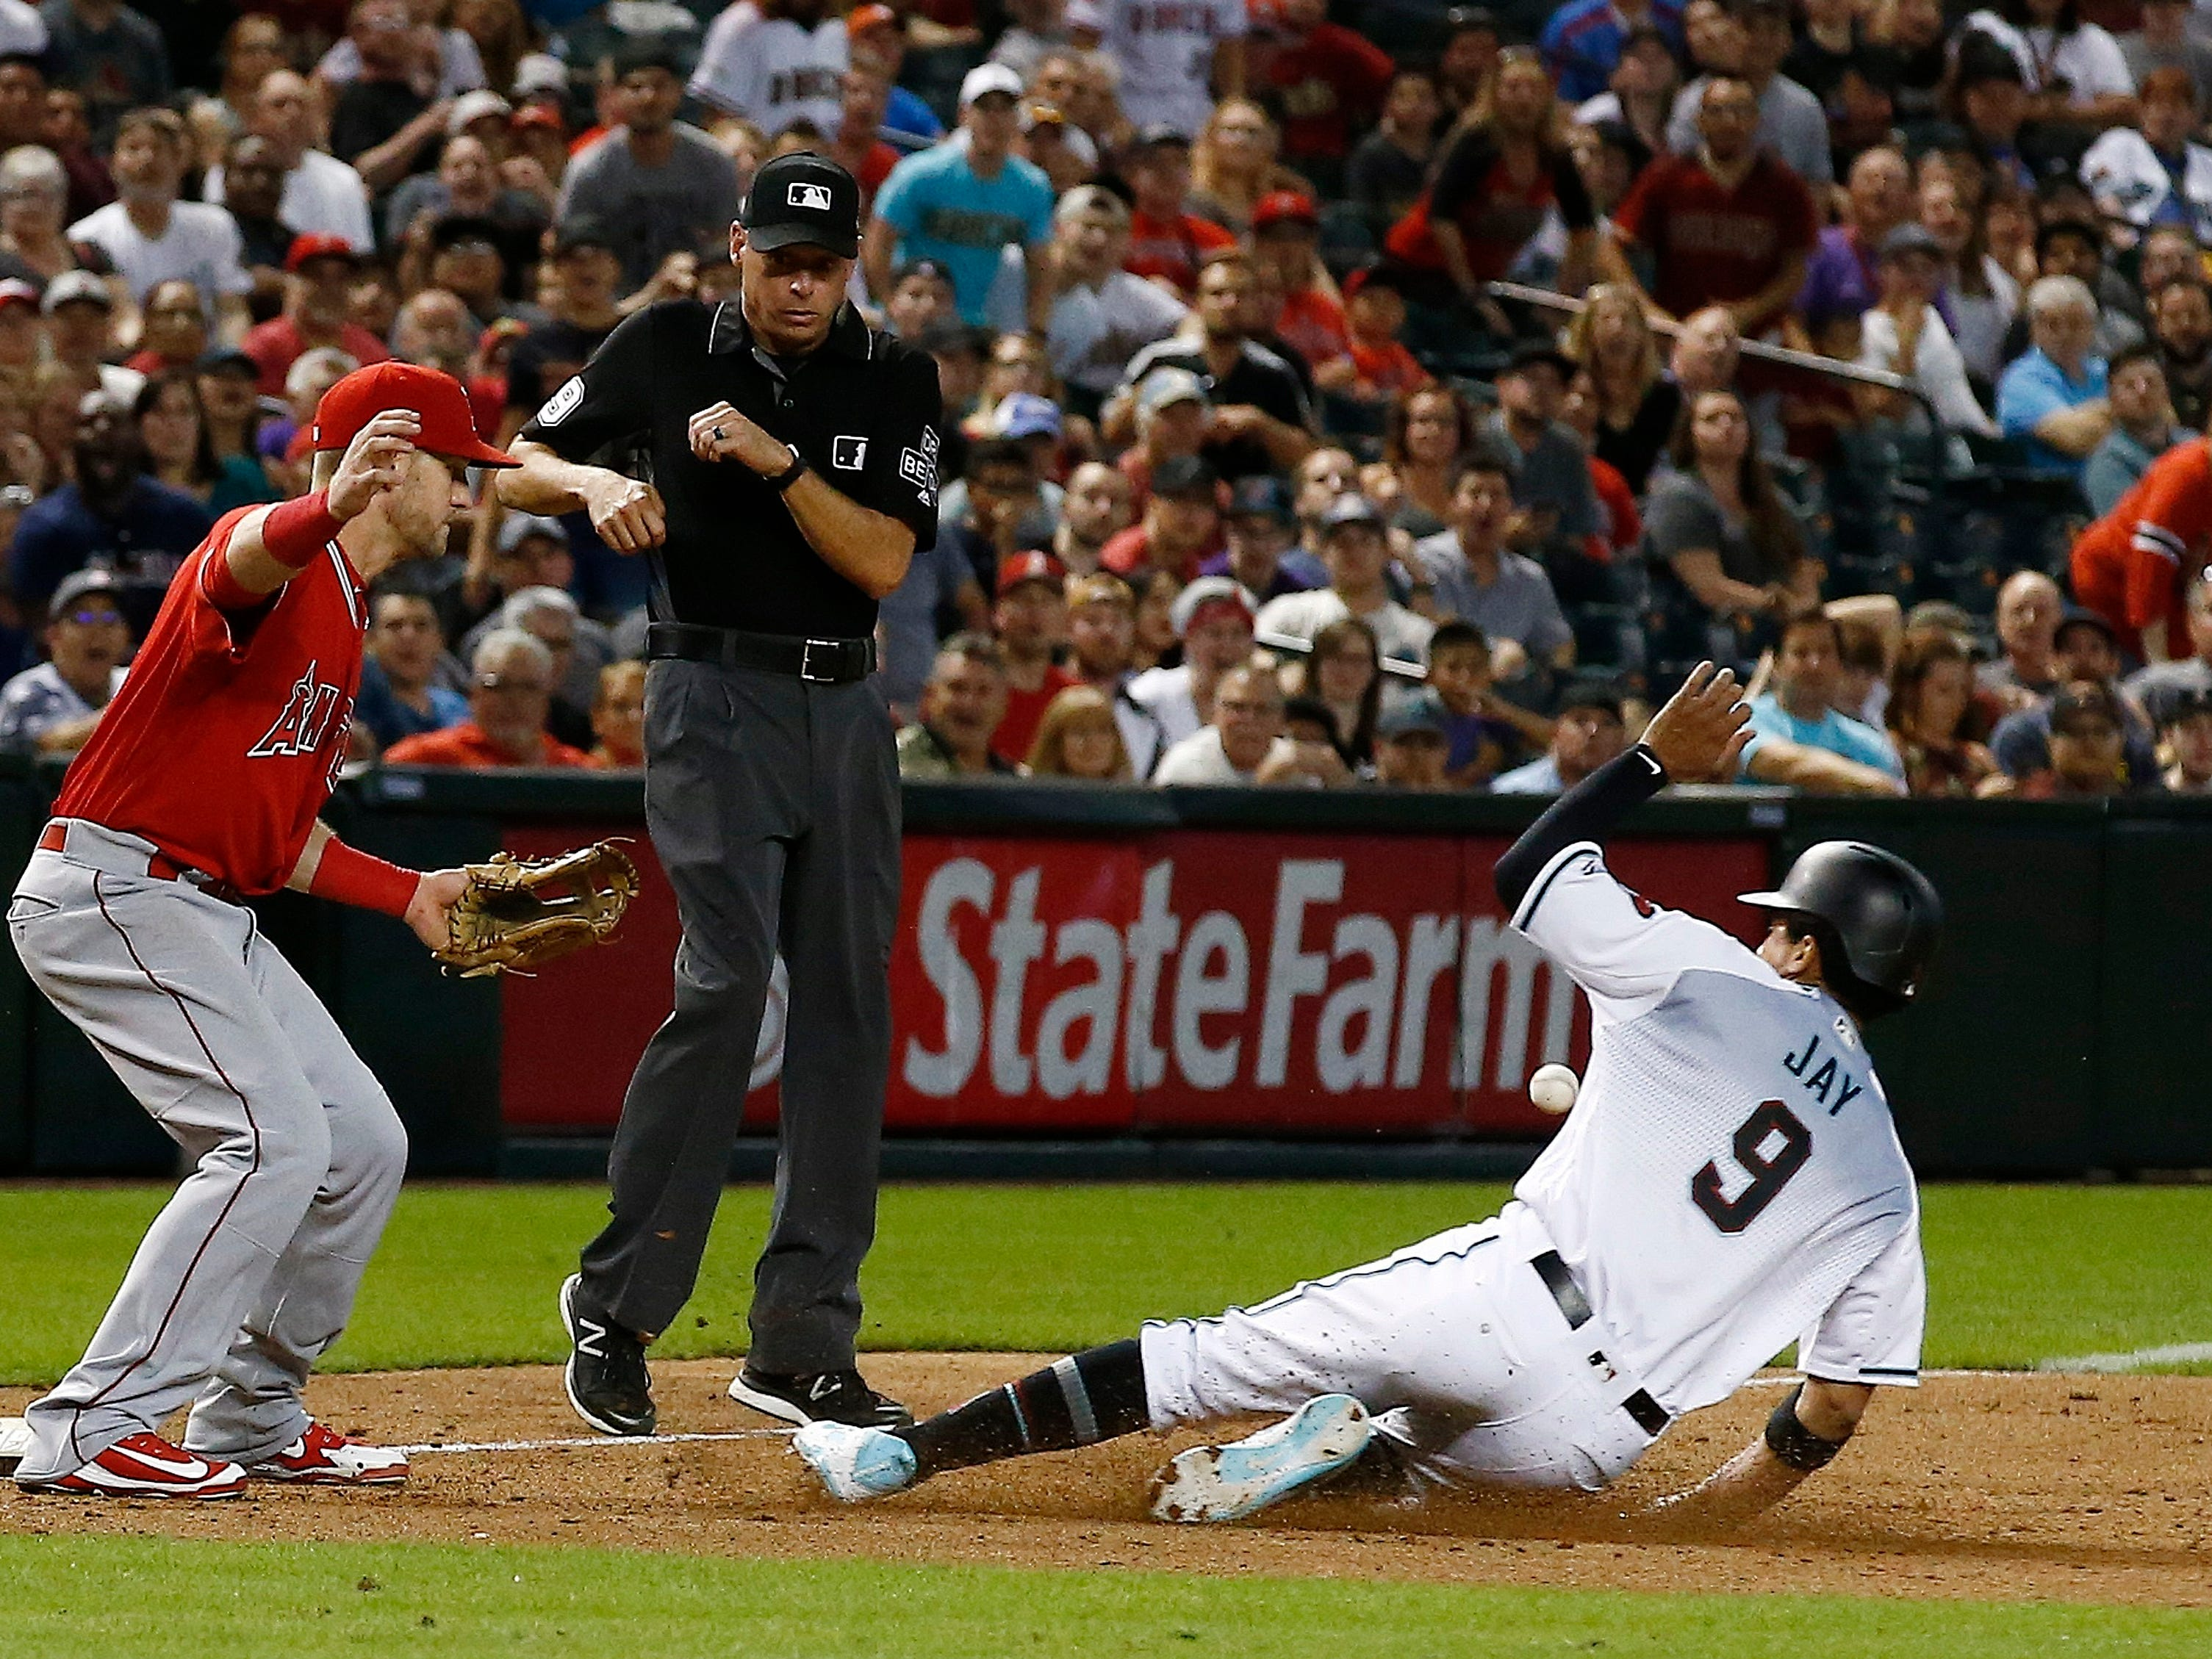 A wild throw by Los Angeles Angels relief pitcher Cam Bedrosian gets past Angels third baseman Taylor Ward, left, as Arizona Diamondbacks center fielder Jon Jay (9) slides safely into third base as umpire Andy Fletcher, middle, looks on during the ninth inning of a baseball game, Tuesday, Aug. 21, 2018, in Phoenix. The Diamondbacks defeated the Angels 5-4.